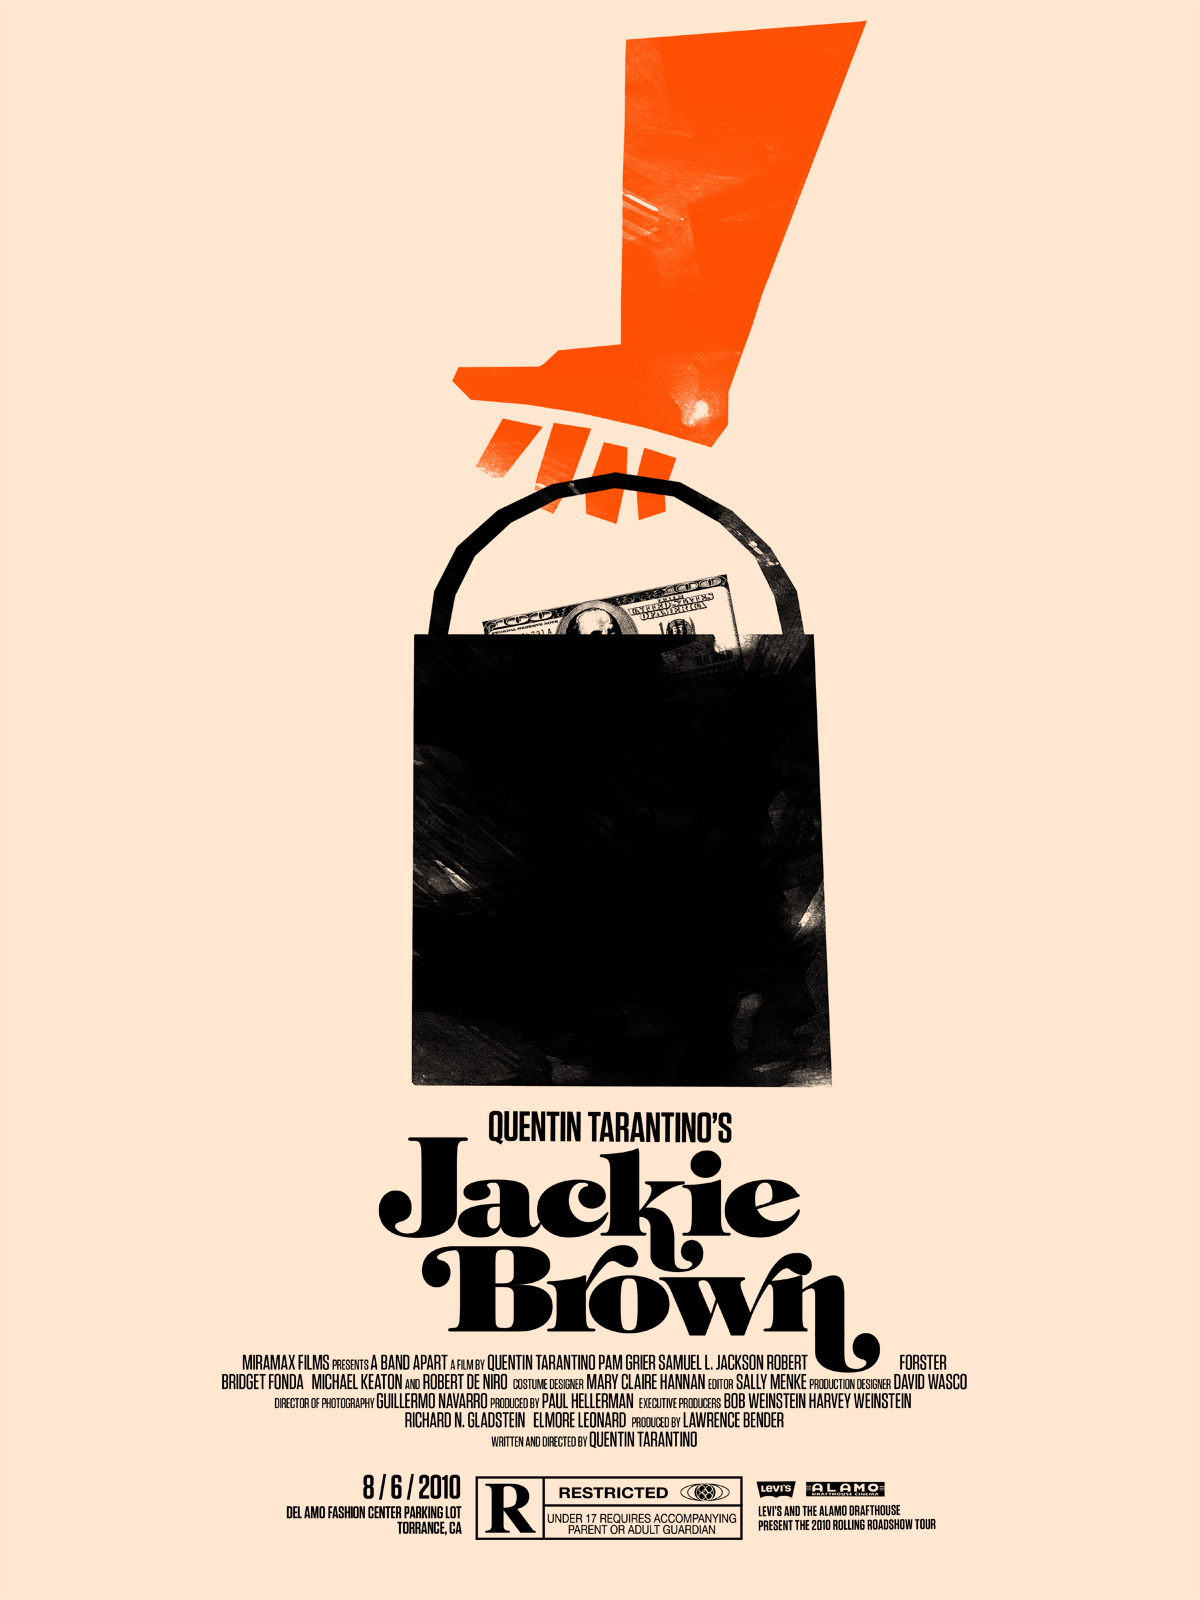 jackie_brown_movie_poster_rolling_roadshow_2010_olly_moss.jpg